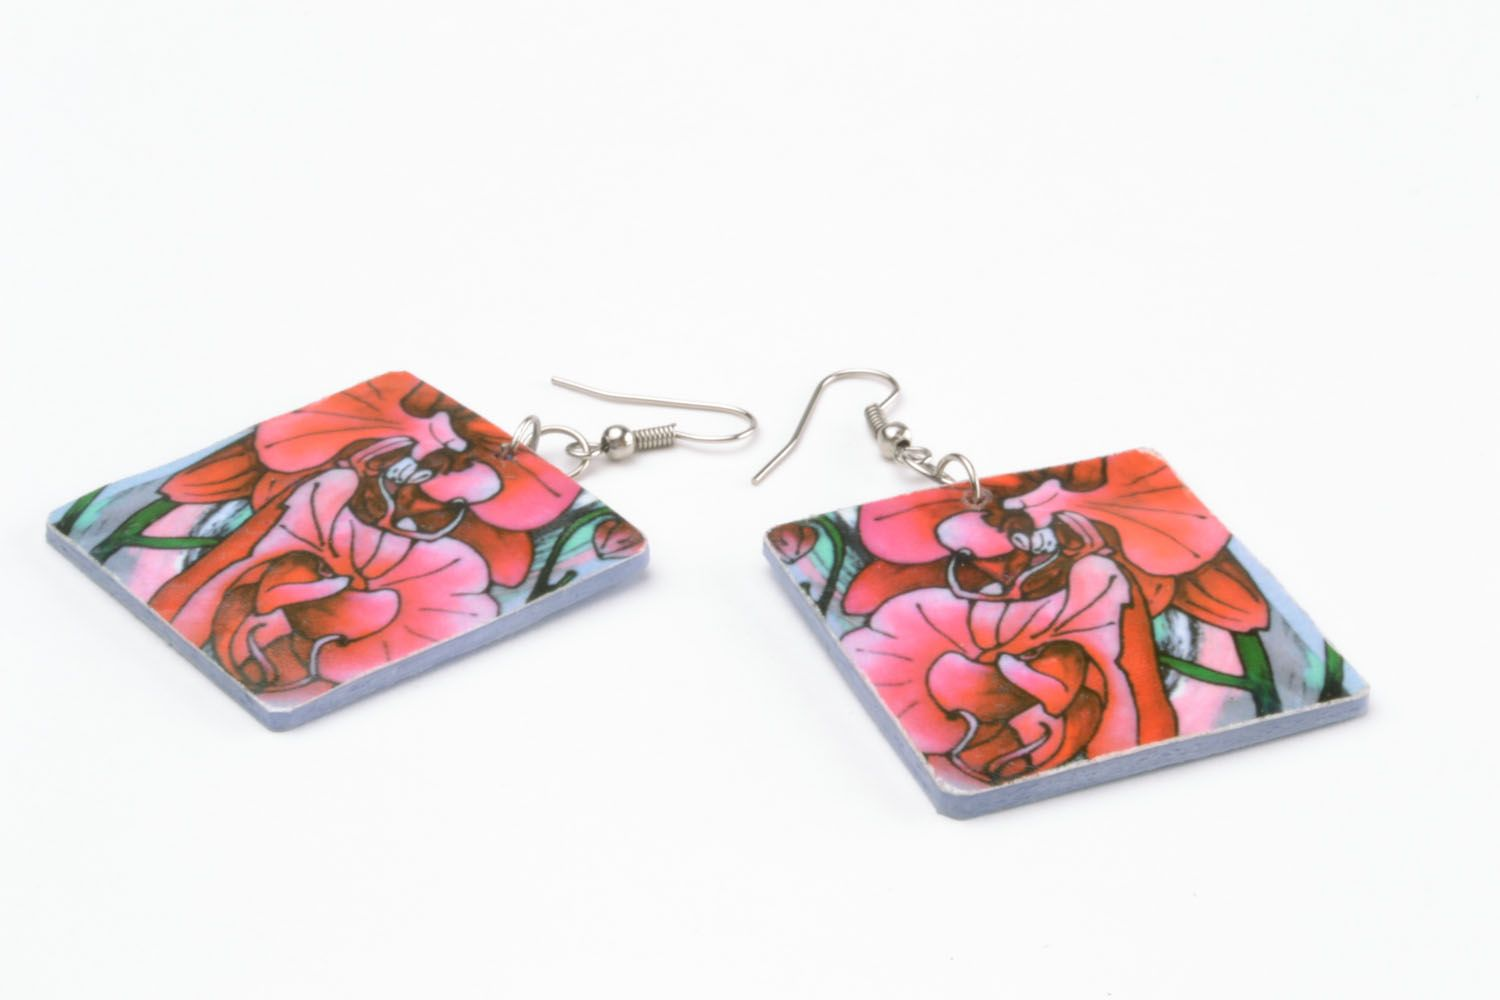 Colourful earrings made of polymer clay photo 4